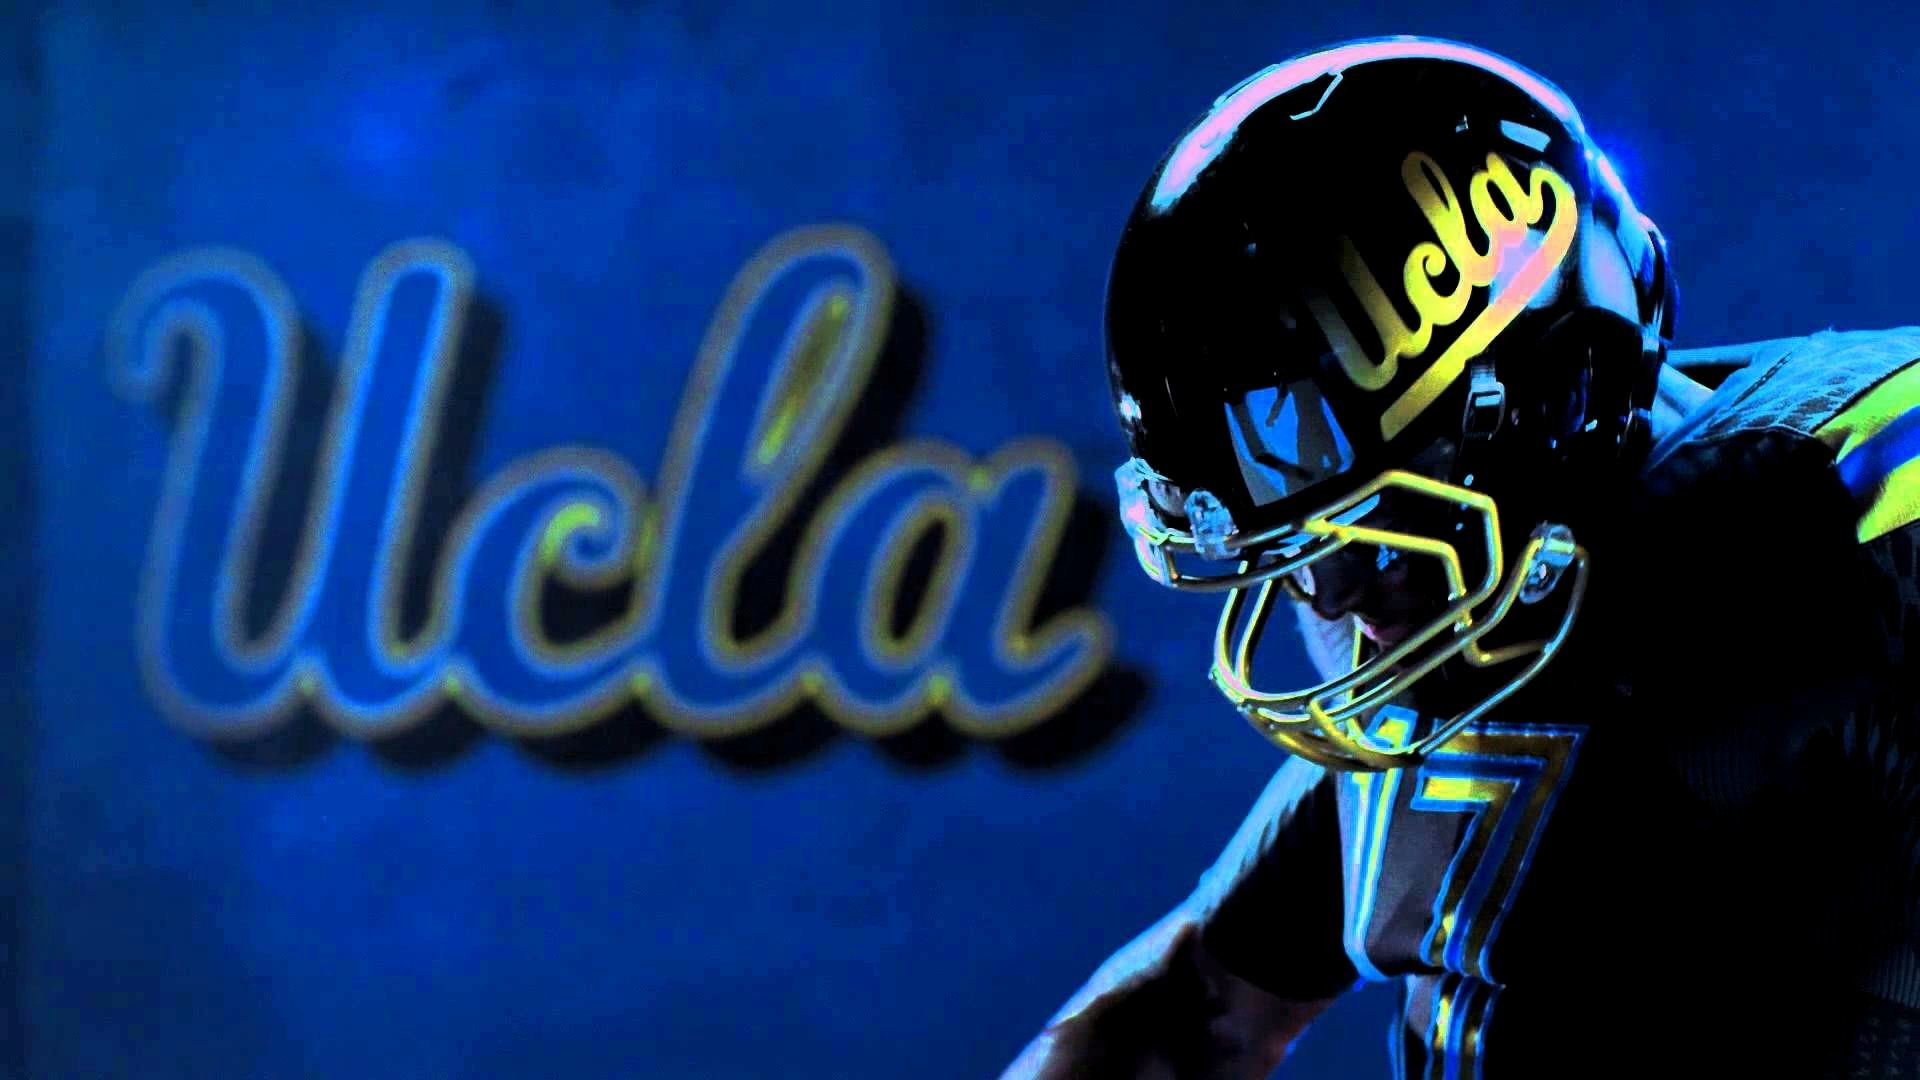 UCLA Wallpaper in HD 1920×1080 | HD Wallpapers | Wallpapers Download | High  Resolution Wallpapers